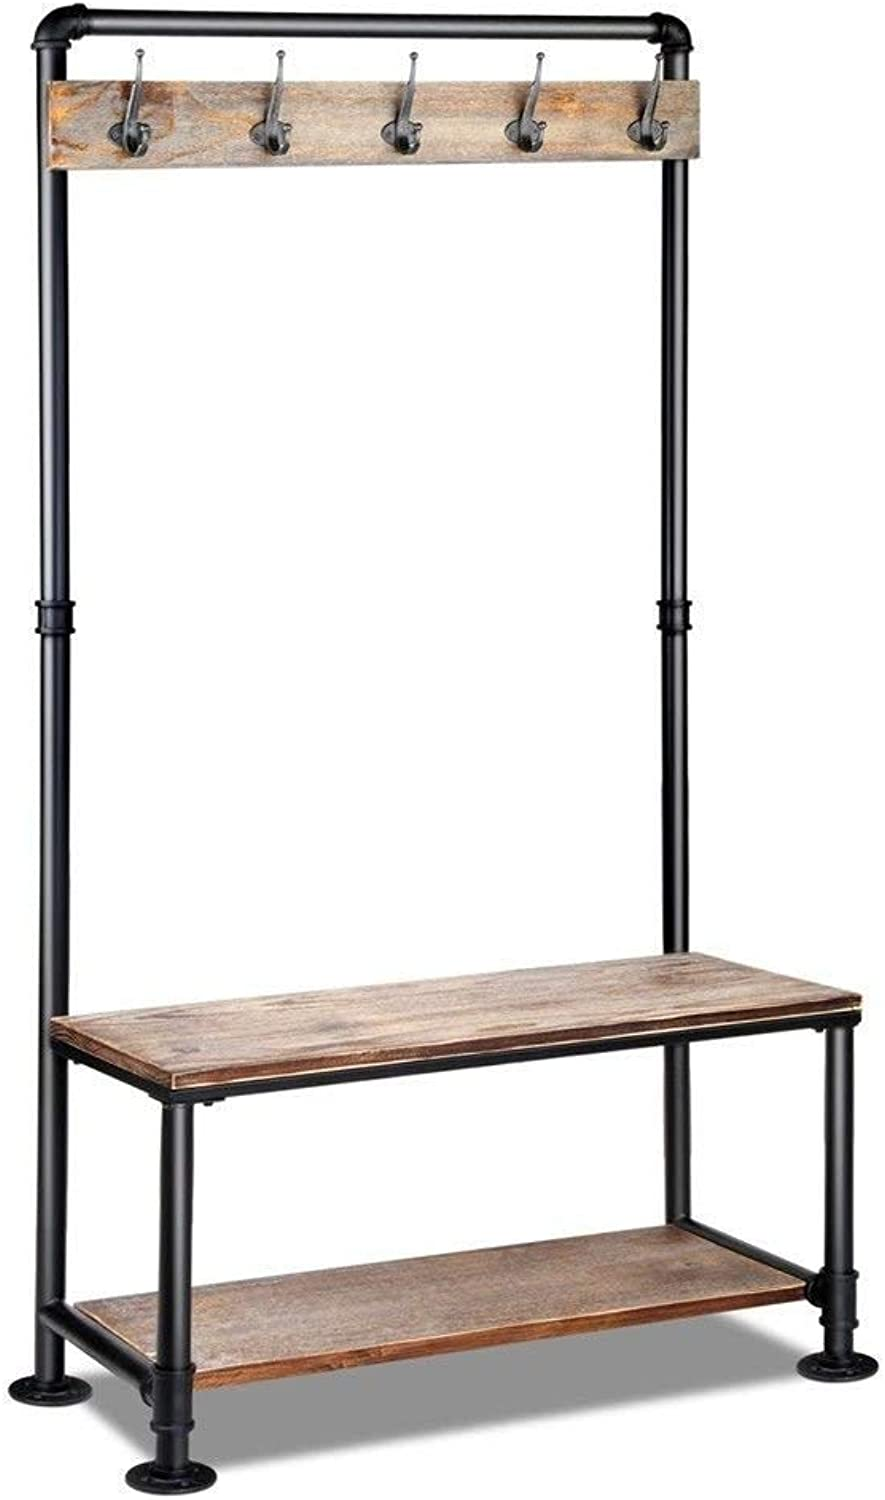 Diwhy Industrial Pipe Clothing Rack Pine Wood Shelving shoes Rack Cloth Hanger Pipe Shelf (Black)